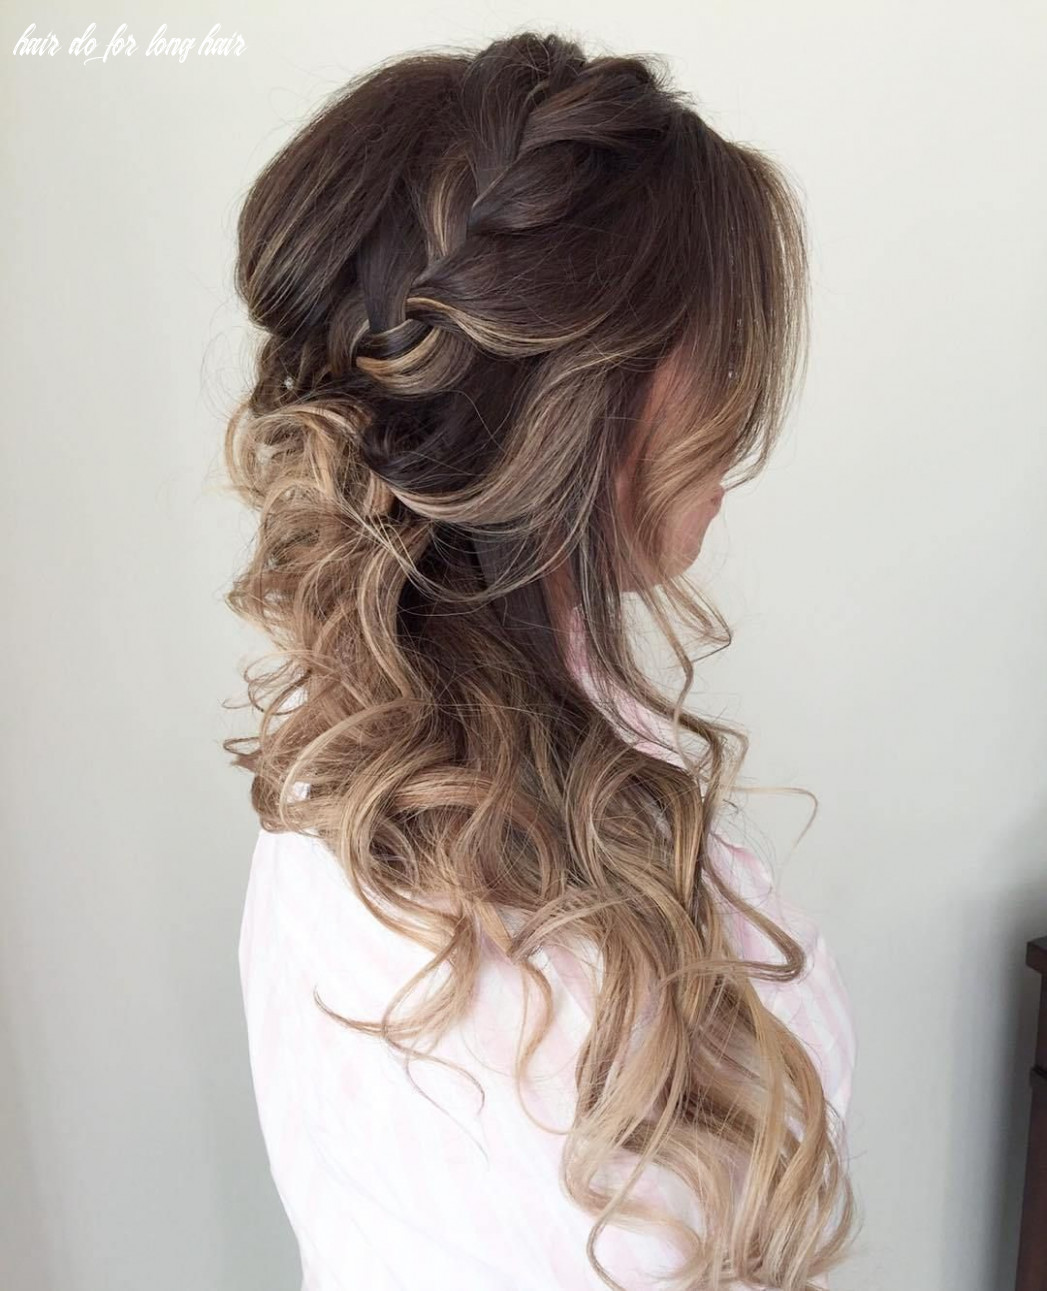 9 picture perfect hairstyles for long thin hair | long thin hair